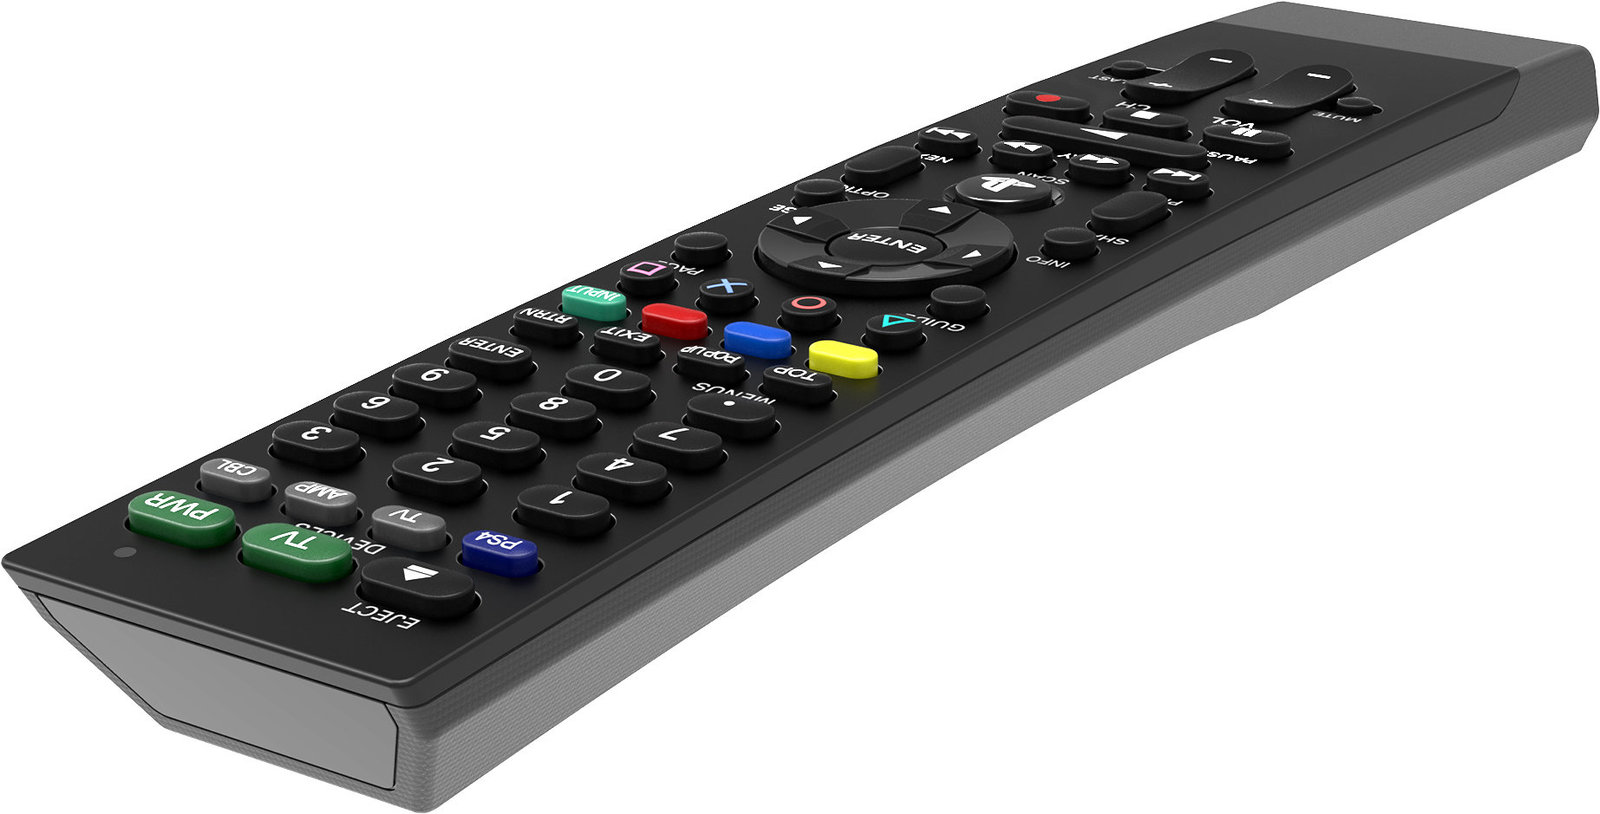 PS4 Universal Media Remote for PS4 image